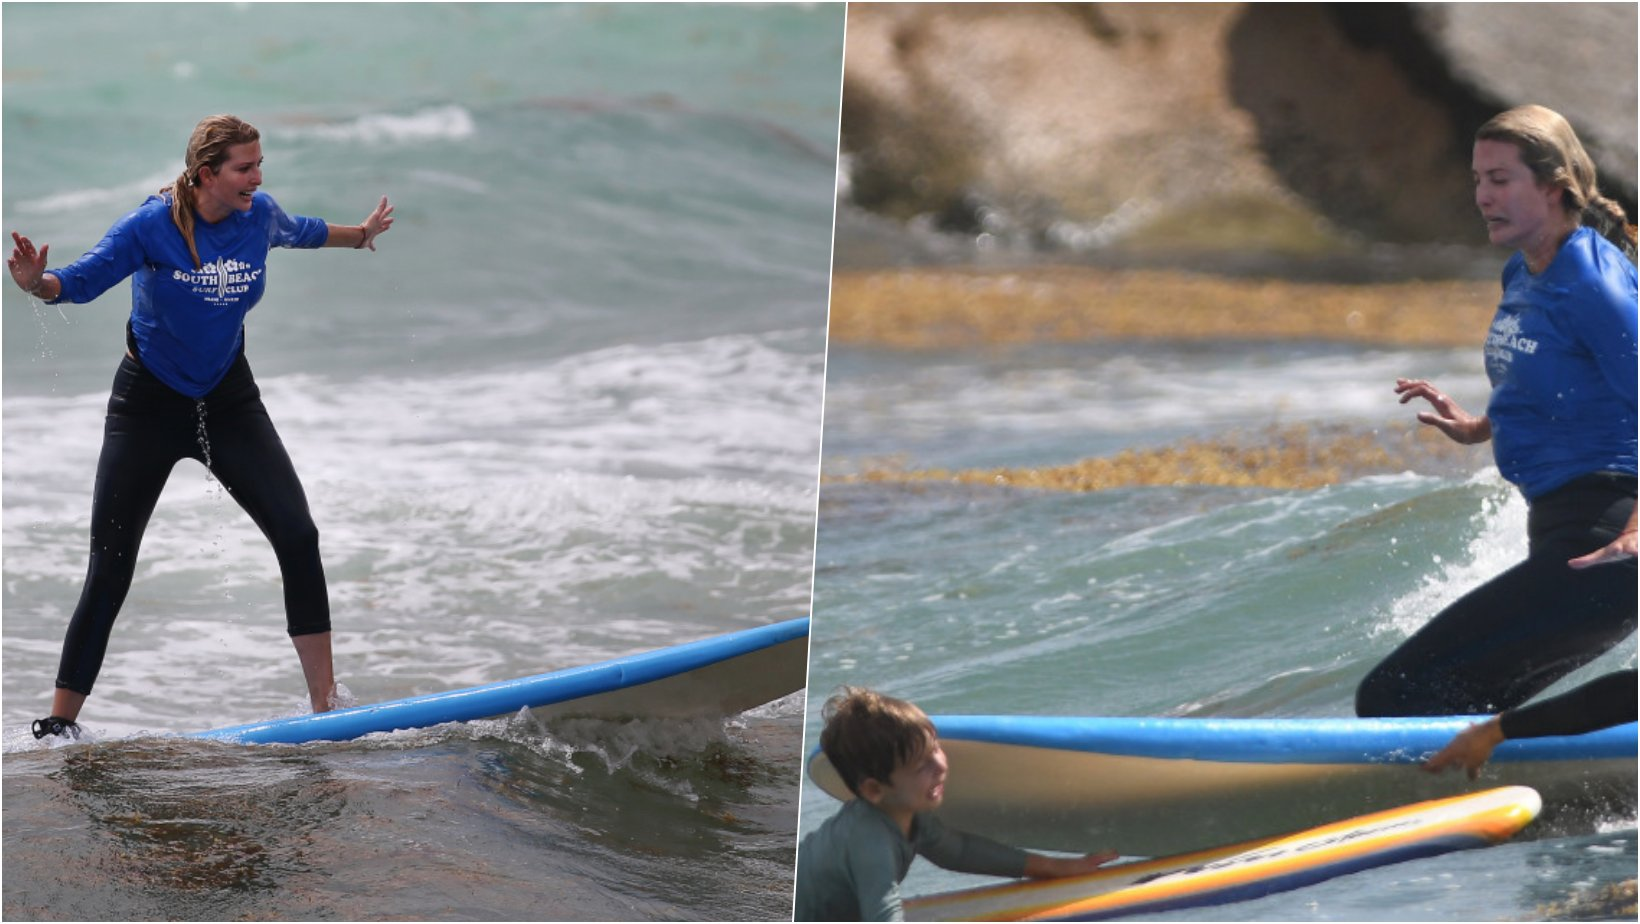 6 facebook cover 15.png?resize=1200,630 - Ivanka Trump Accidentally Hits Her 5 Year Old Son In The Face With A Surfing Board